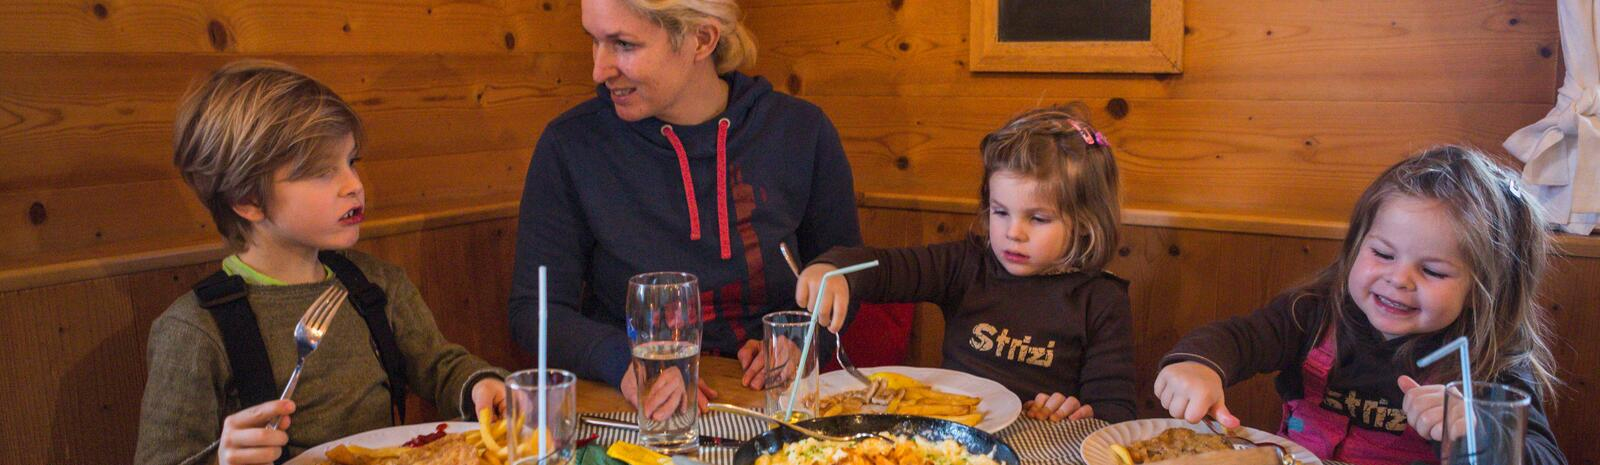 Wiener Schnitzel as a reward for the first turns | © Heiko Mandl